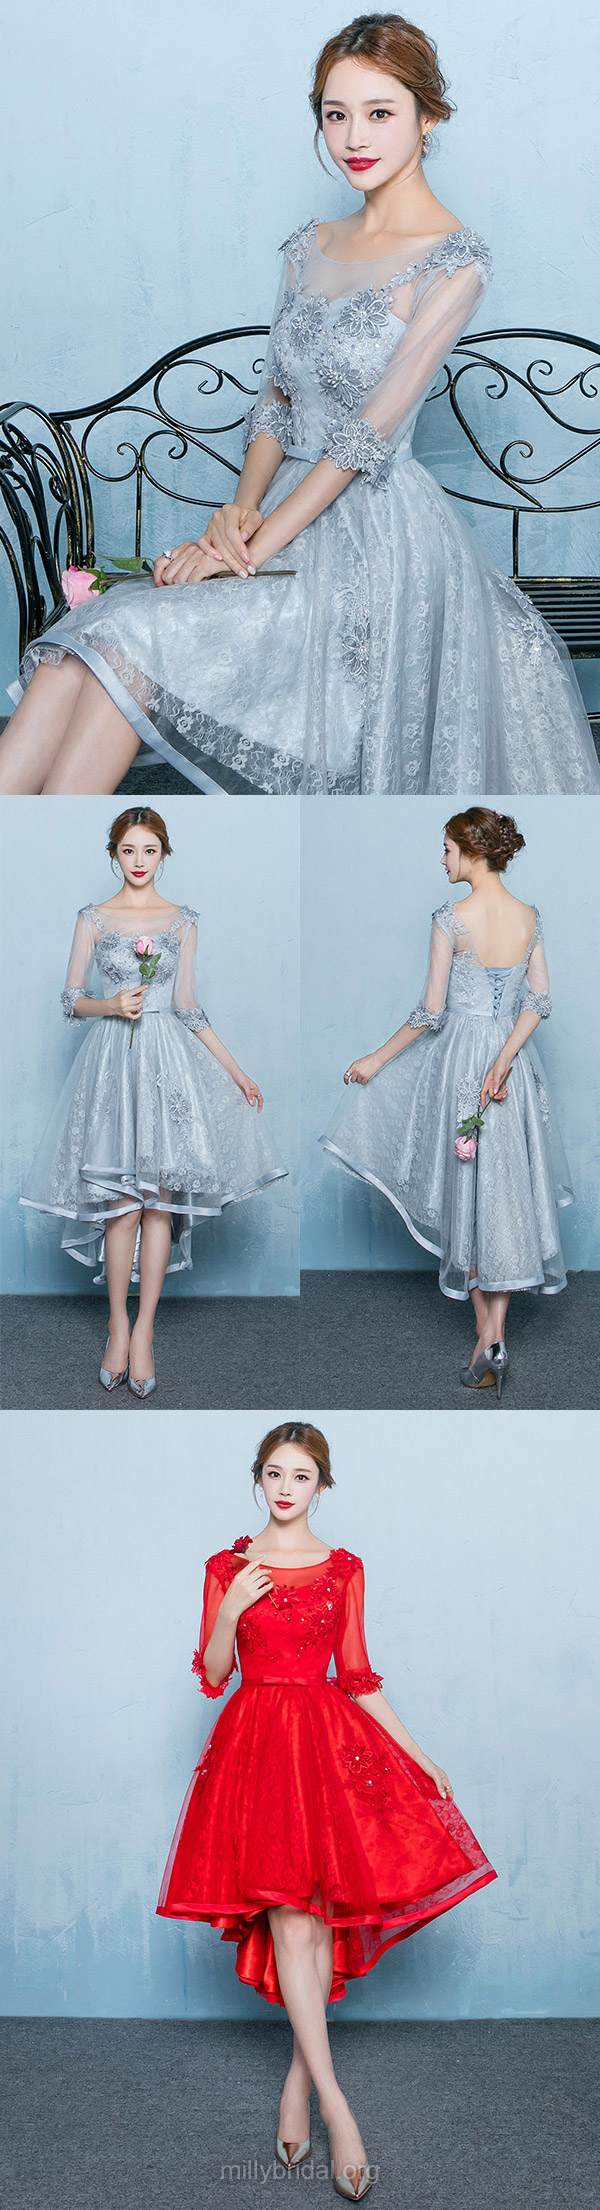 High Low Prom Dresses Grey, 2018 Girls Party Dresses A-line, Scoop ...